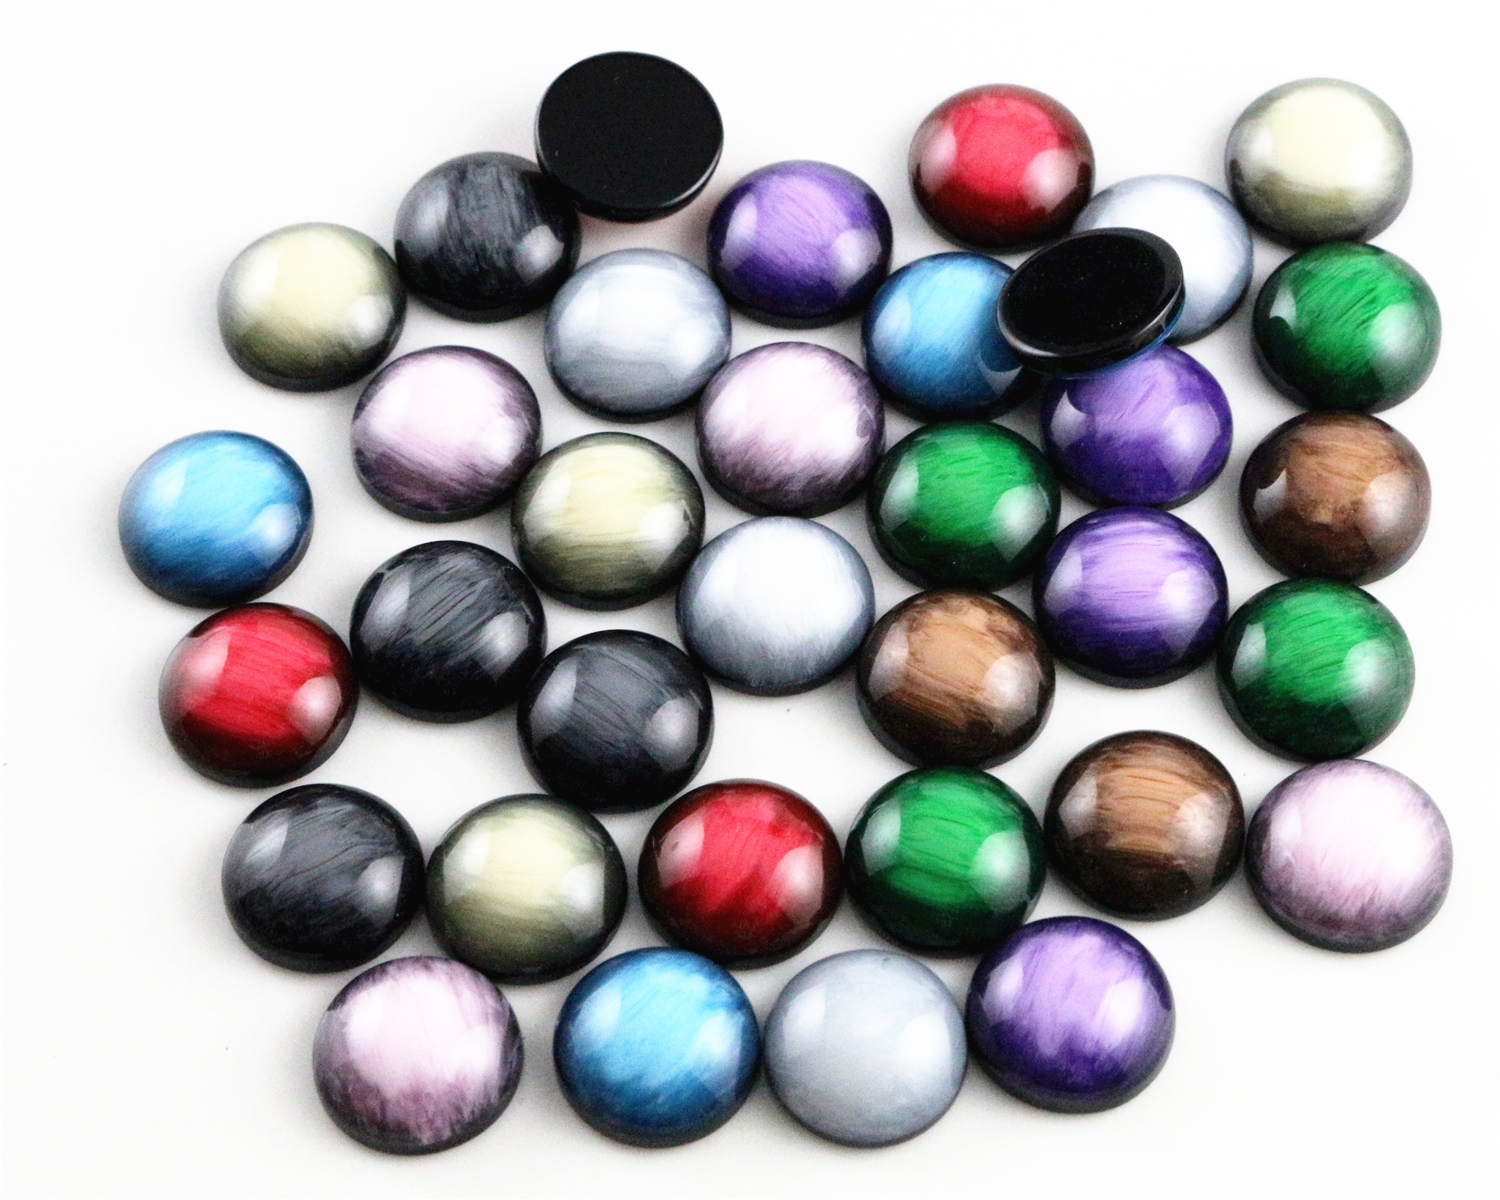 New Fashion 40pcs 12mm Mix Colors Stylish Color Brushed Style Flat back Resin Cabochons Cameo 8mm 10mm 12mm 14mm 16mm 18mm 20mm 7 size style 20pcs lot black shell color flat back resin cabochons cameo